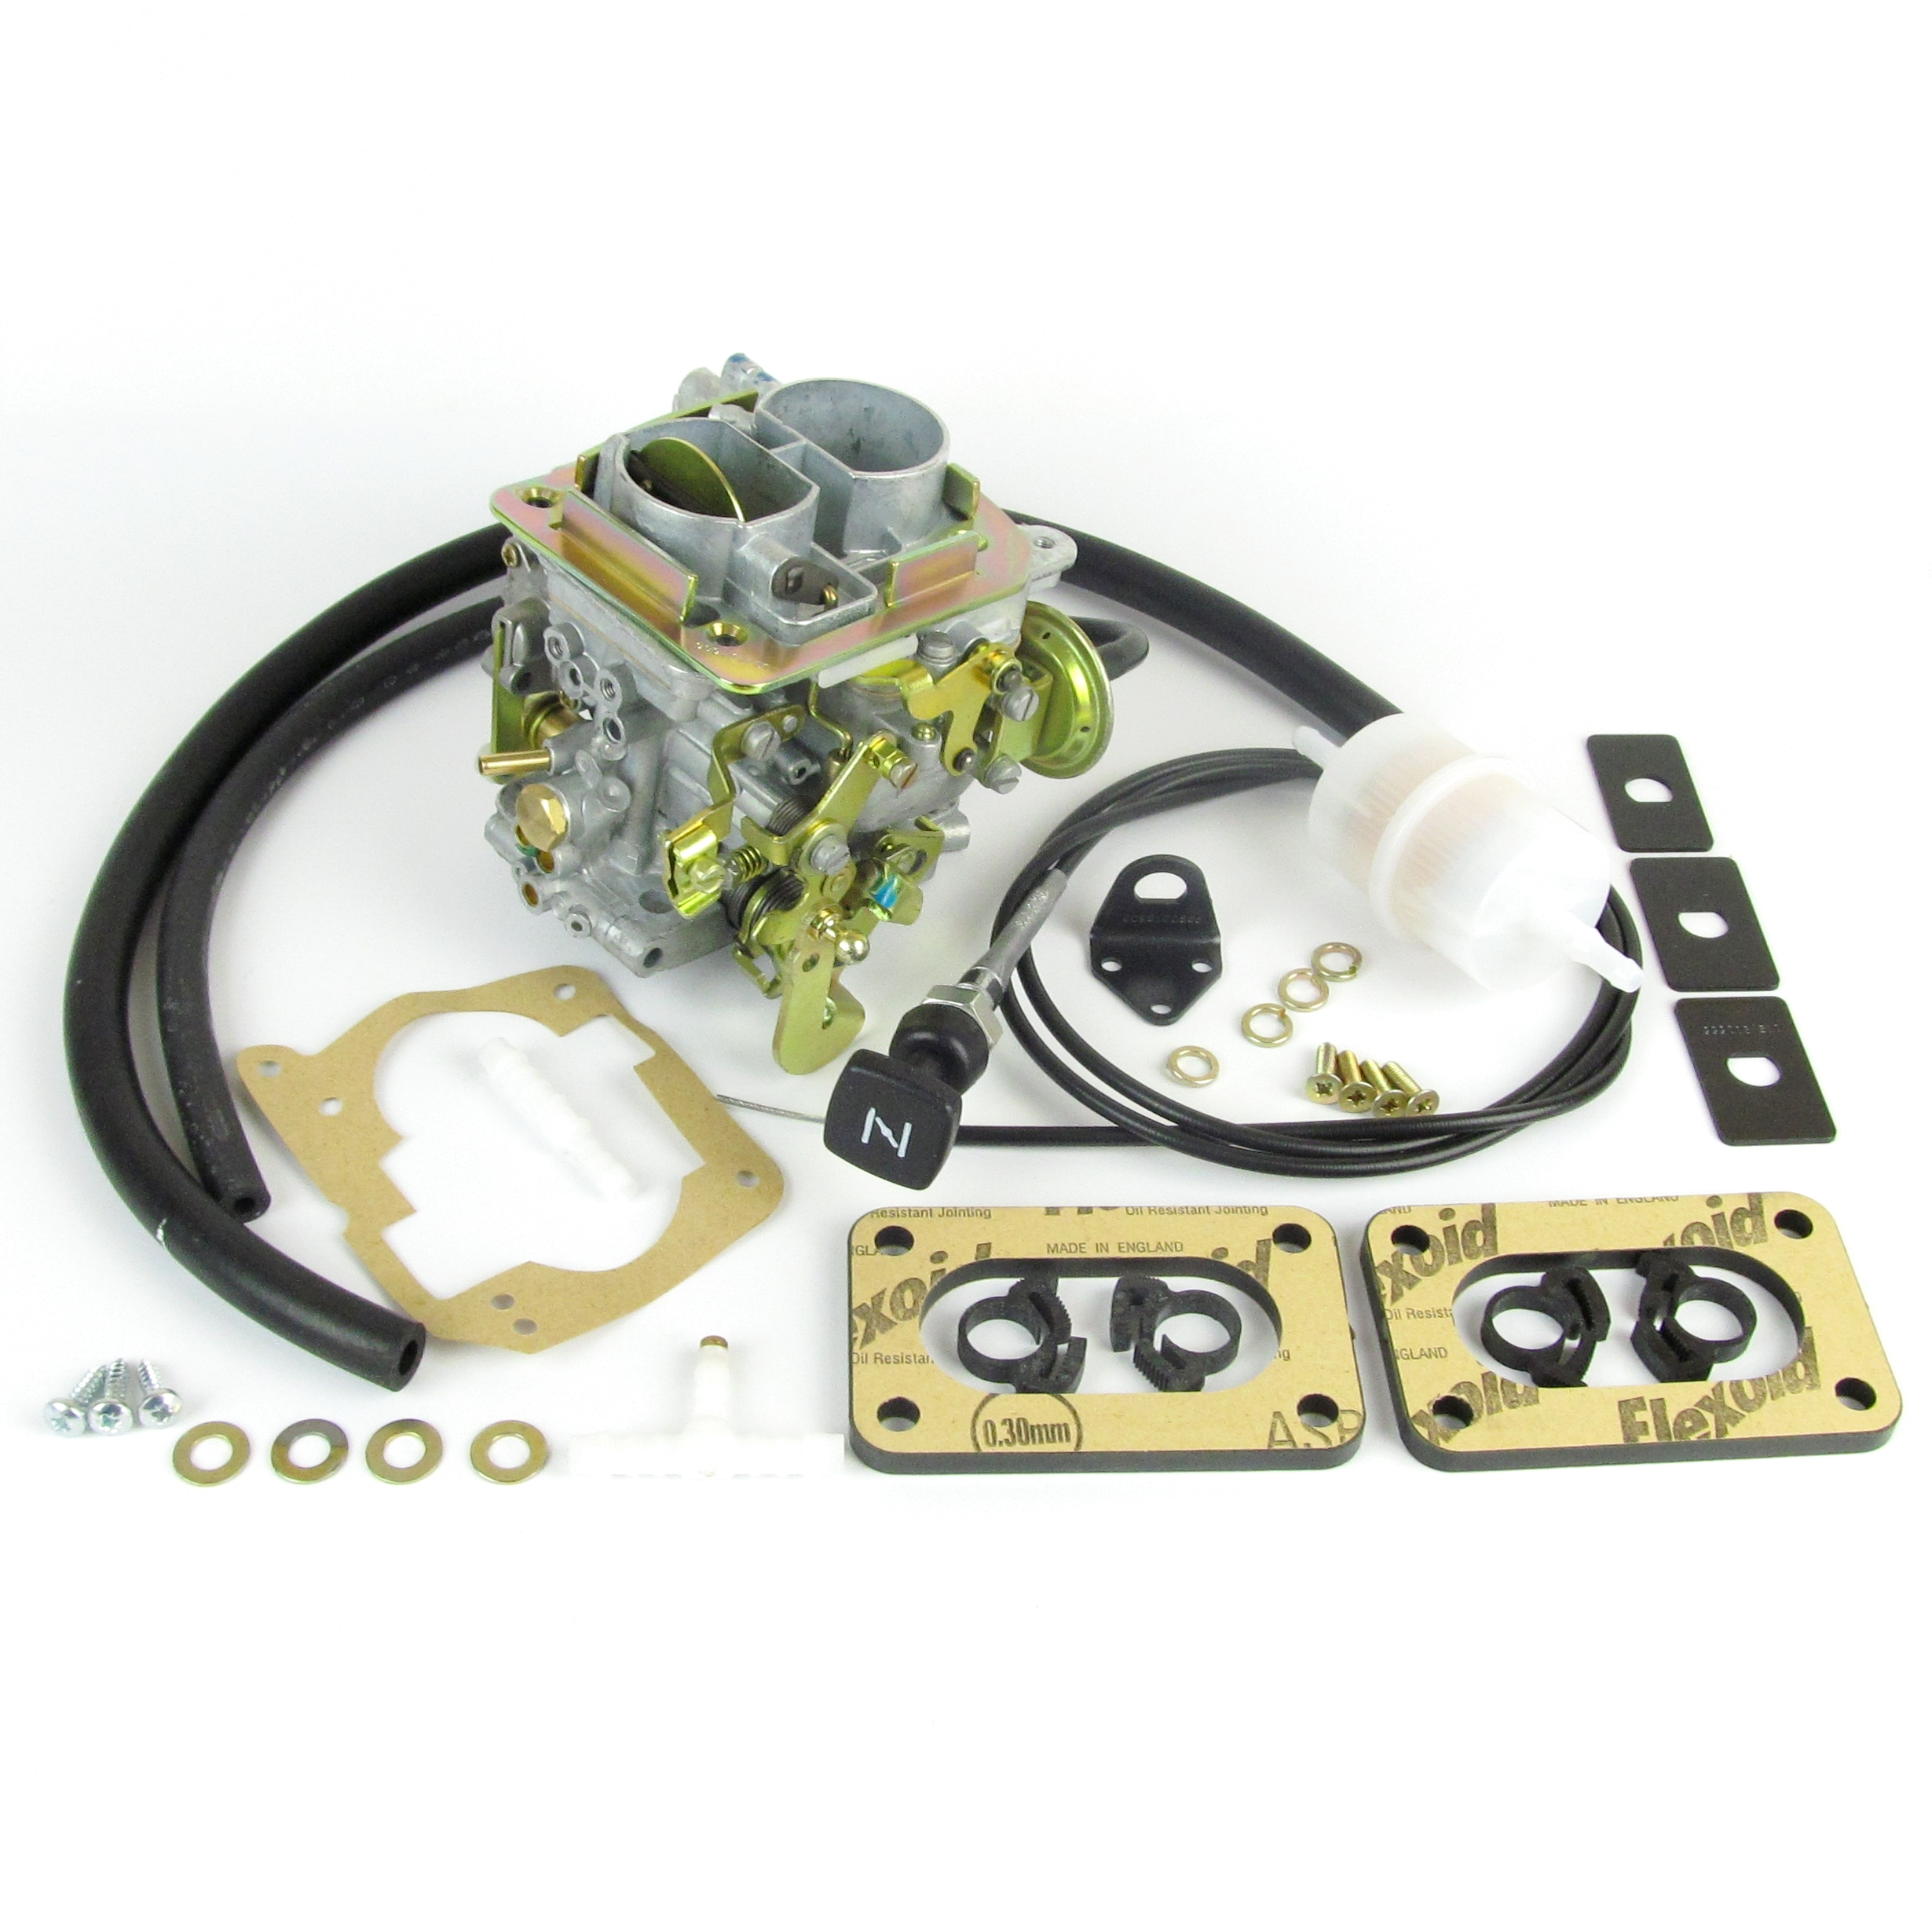 WEBER DMTL 32/34 CARB KIT FORD FIESTA XR2 1.6 OHV/CVH & ESCORT XR3 1.6 CVH ENGINE